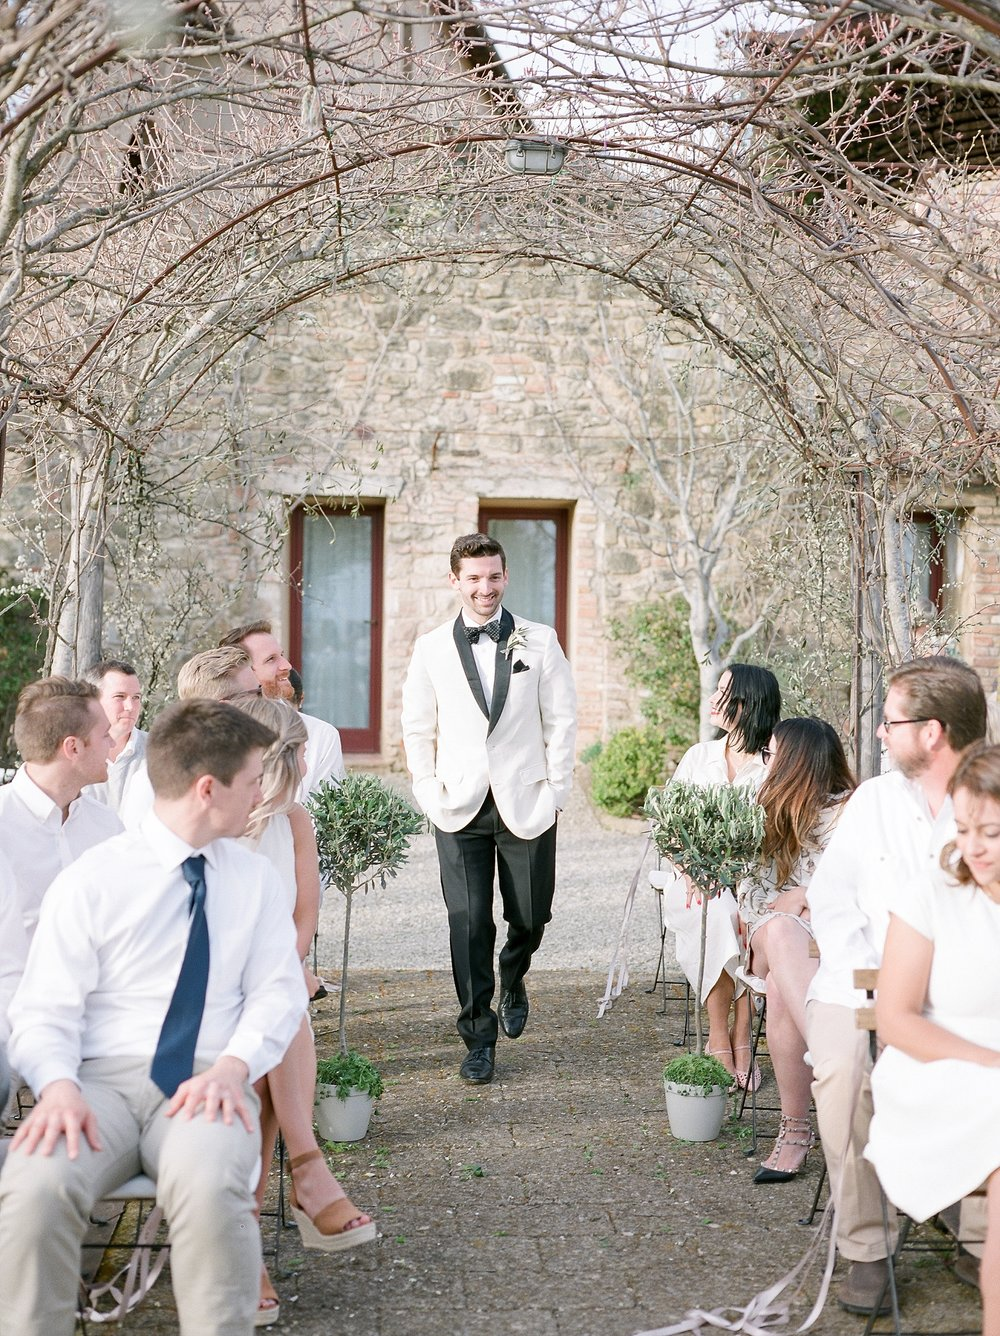 All White Destination Wedding in the Hills of Tuscany Italy at Estate Borgo Petrognano by Kelsi Kliethermes Photography_0046.jpg